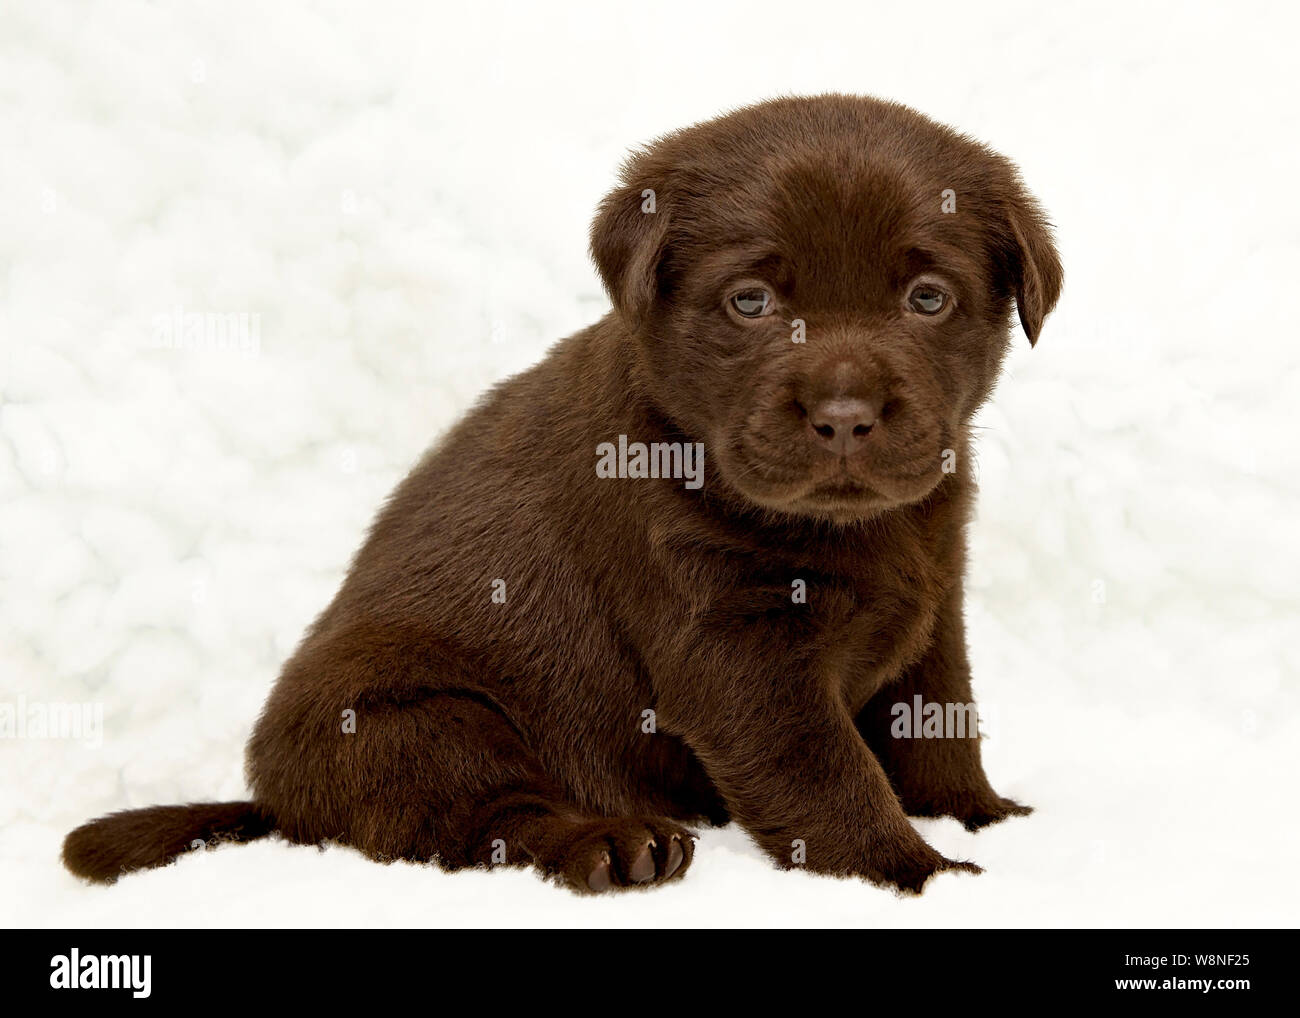 Seven Week Old Chocolate Labrador Puppy Portrait Stock Photo Alamy